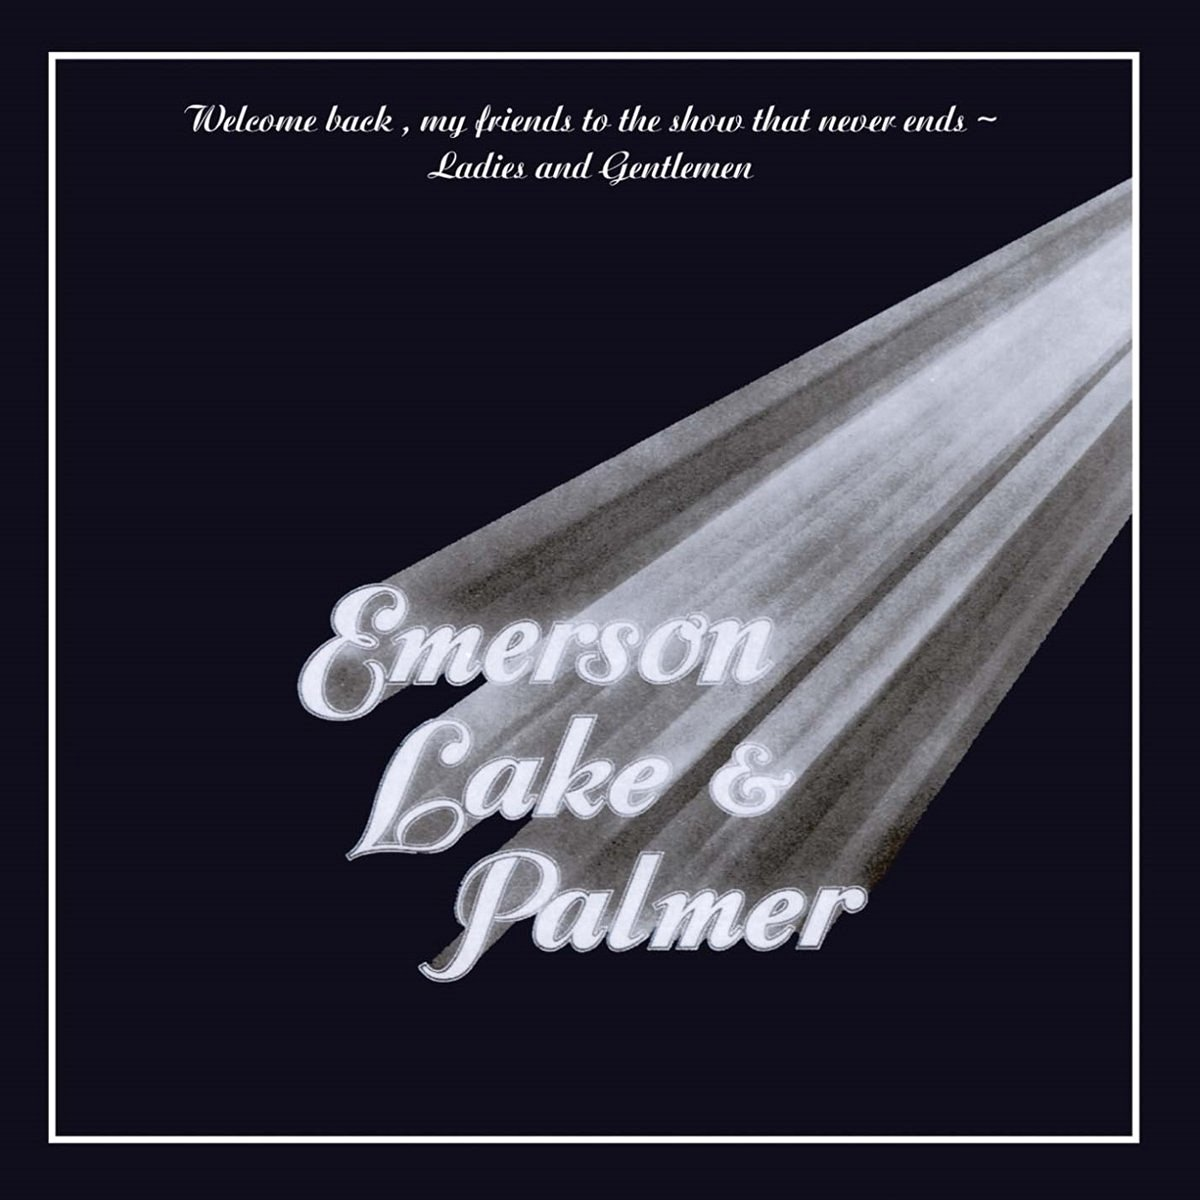 vinyl 3LP EMERSON, LAKE & PALMER WELCOME BACK MY FRIENDS TO THE SHOW THAT NEVER ENDS - LADIES AND GENTLEMEN